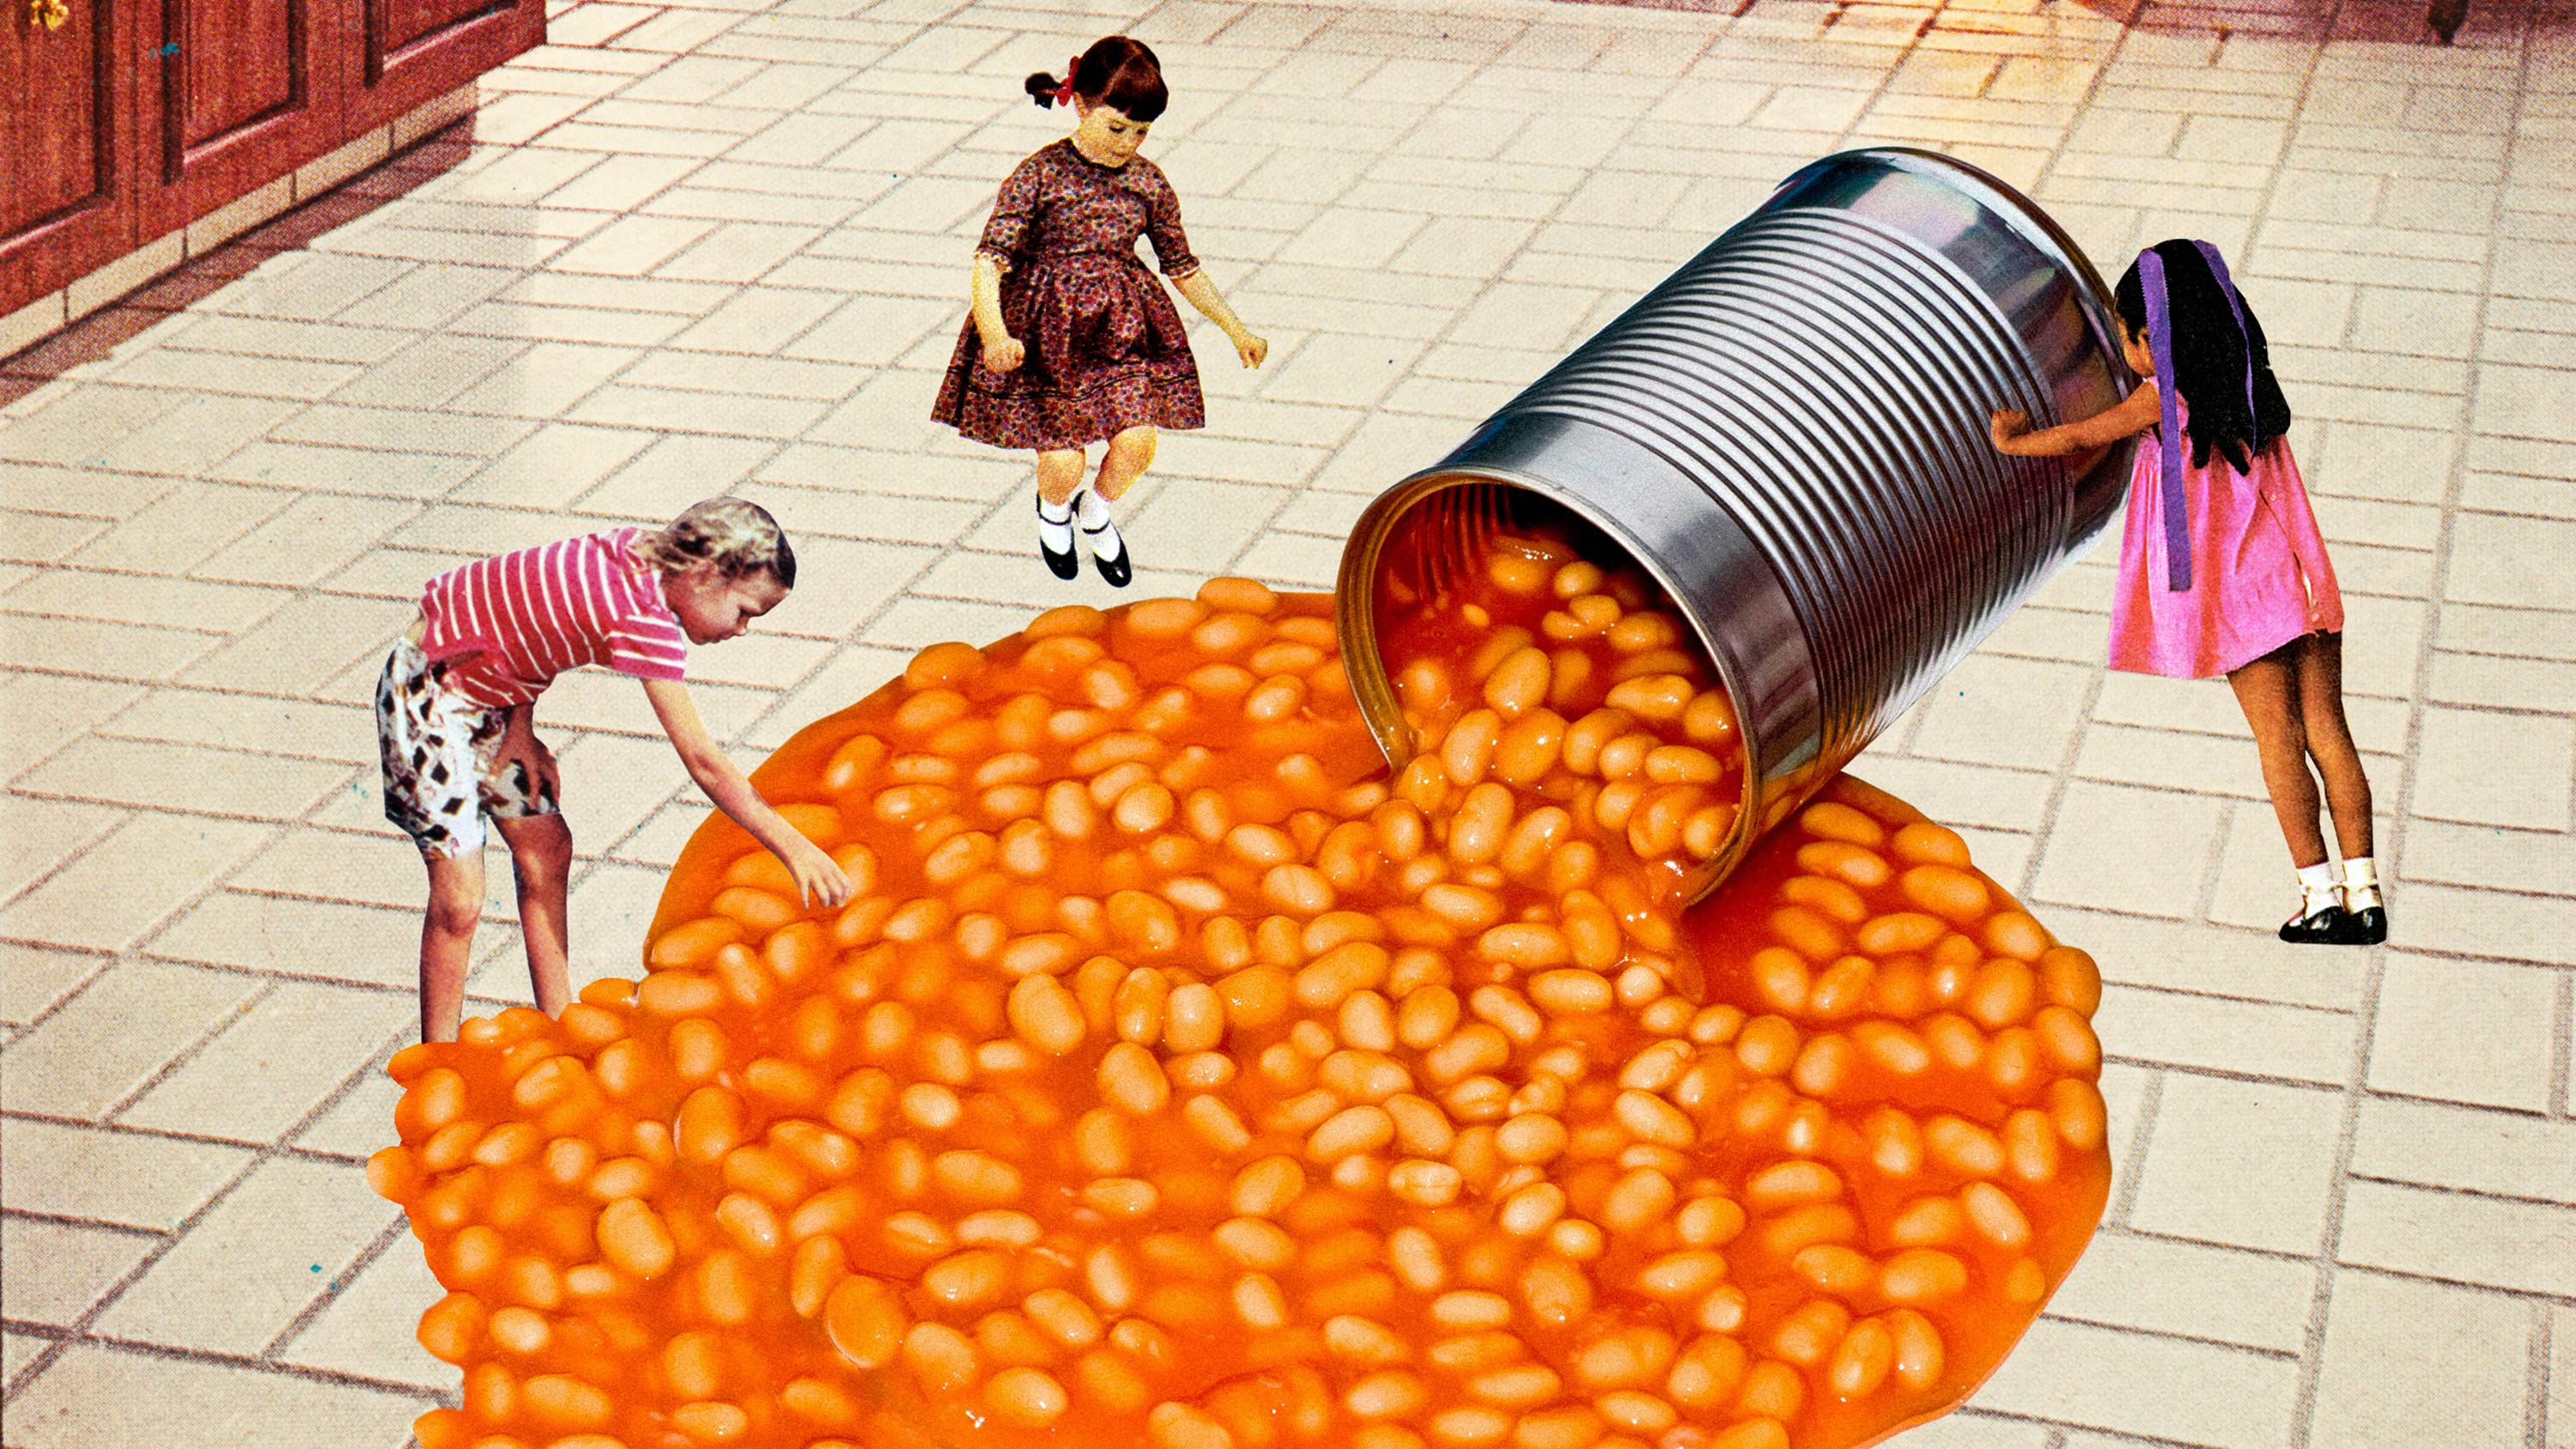 World In A Dish Why The Baked Bean Divides America And Britain 1843 Magazine The Economist